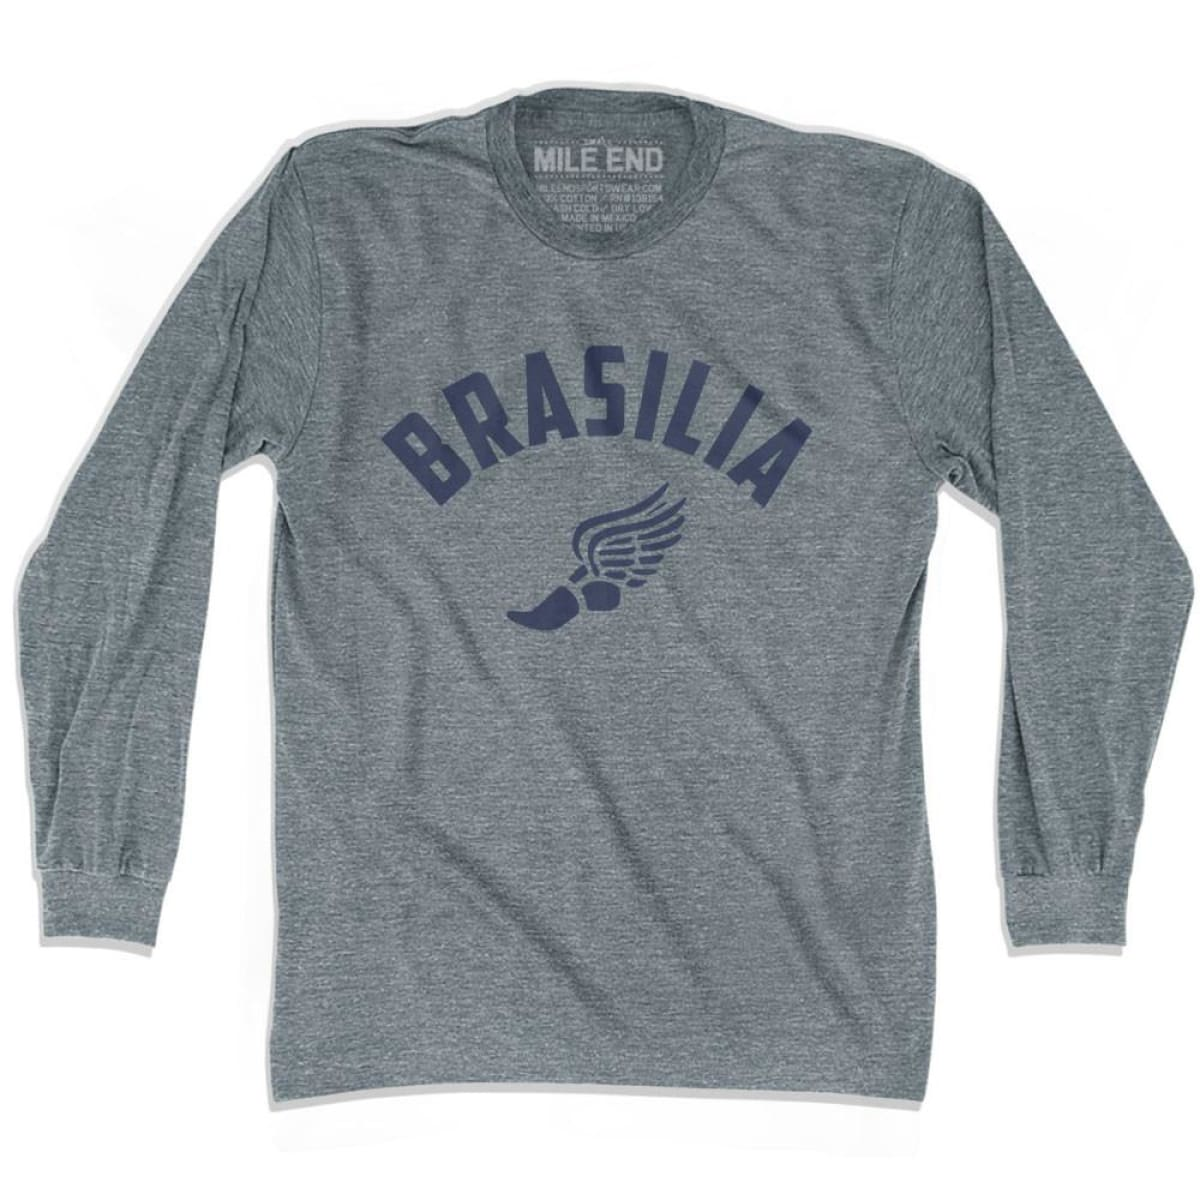 Brasilia Track Long Sleeve T-shirt - Athletic Grey / Adult X-Small - Mile End Track